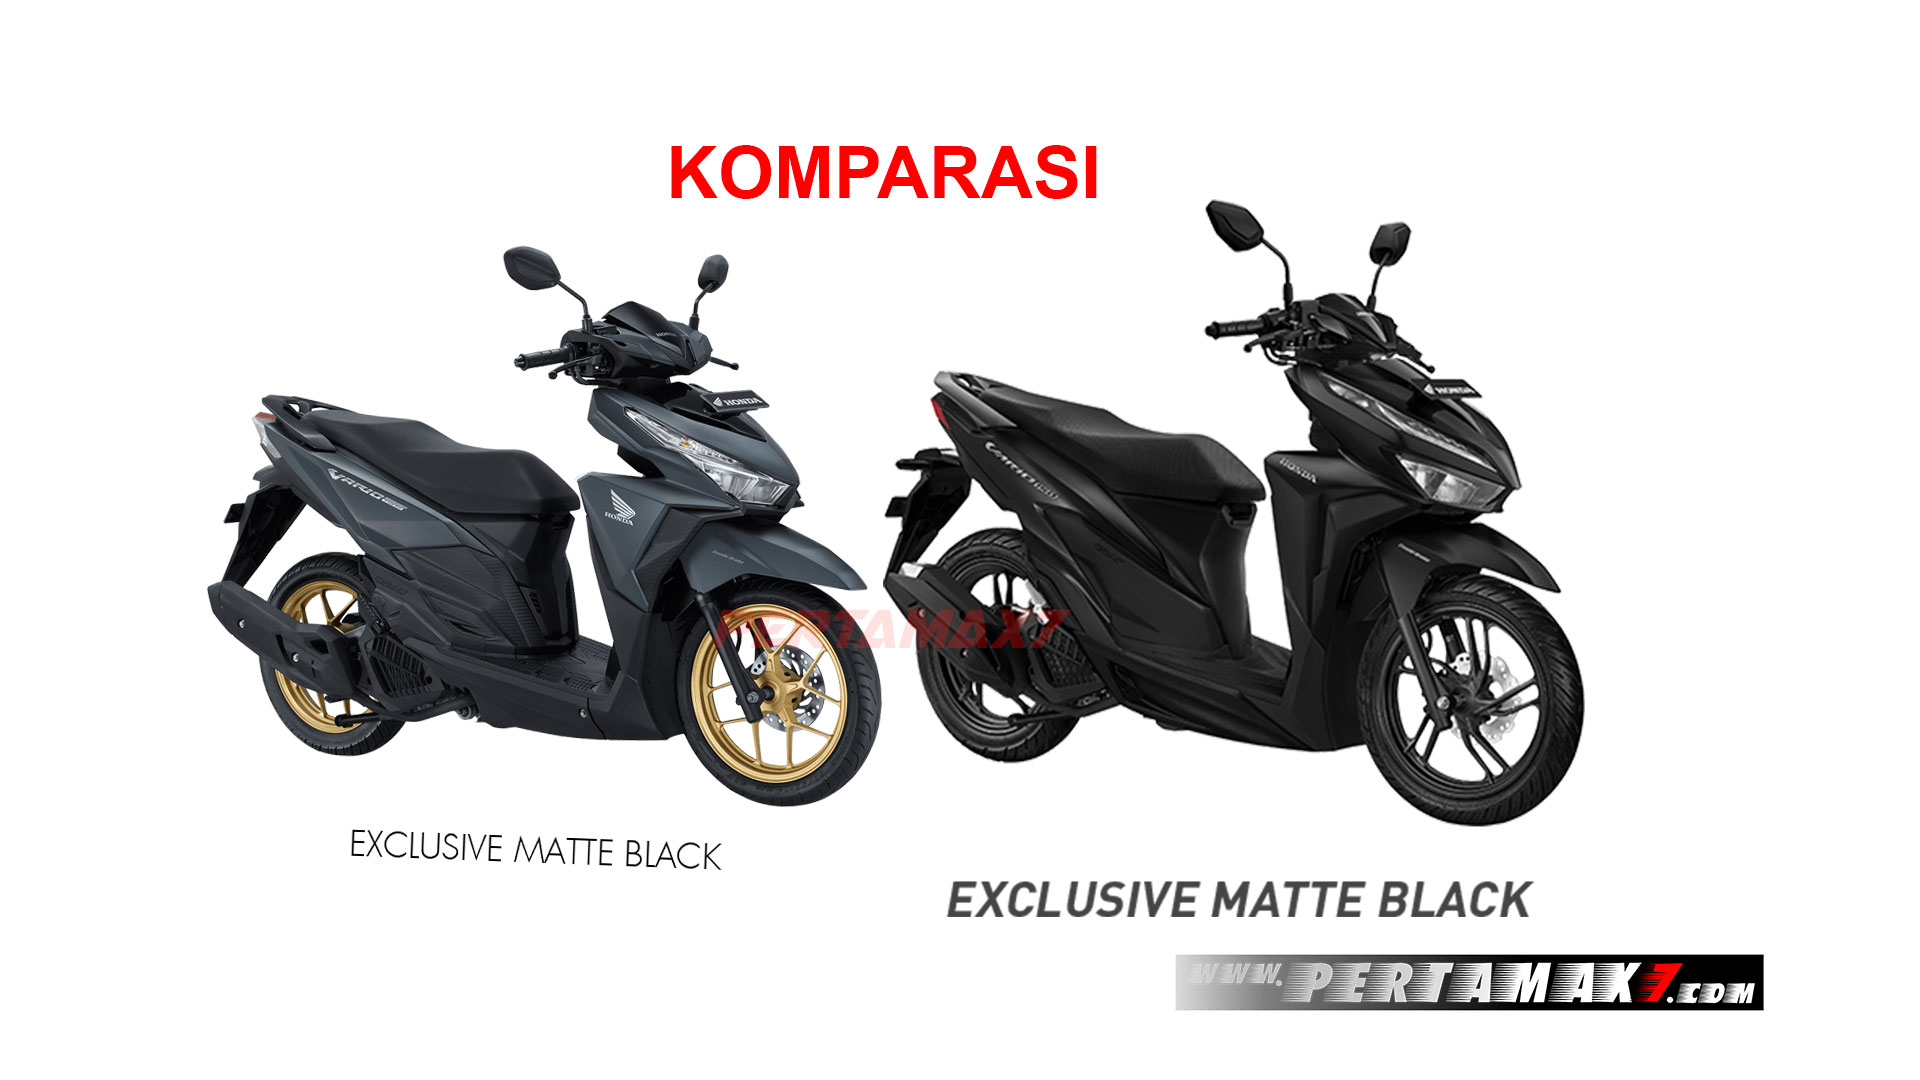 Komparasi Spesifikasi All New Honda Vario 150 eSP VS Old